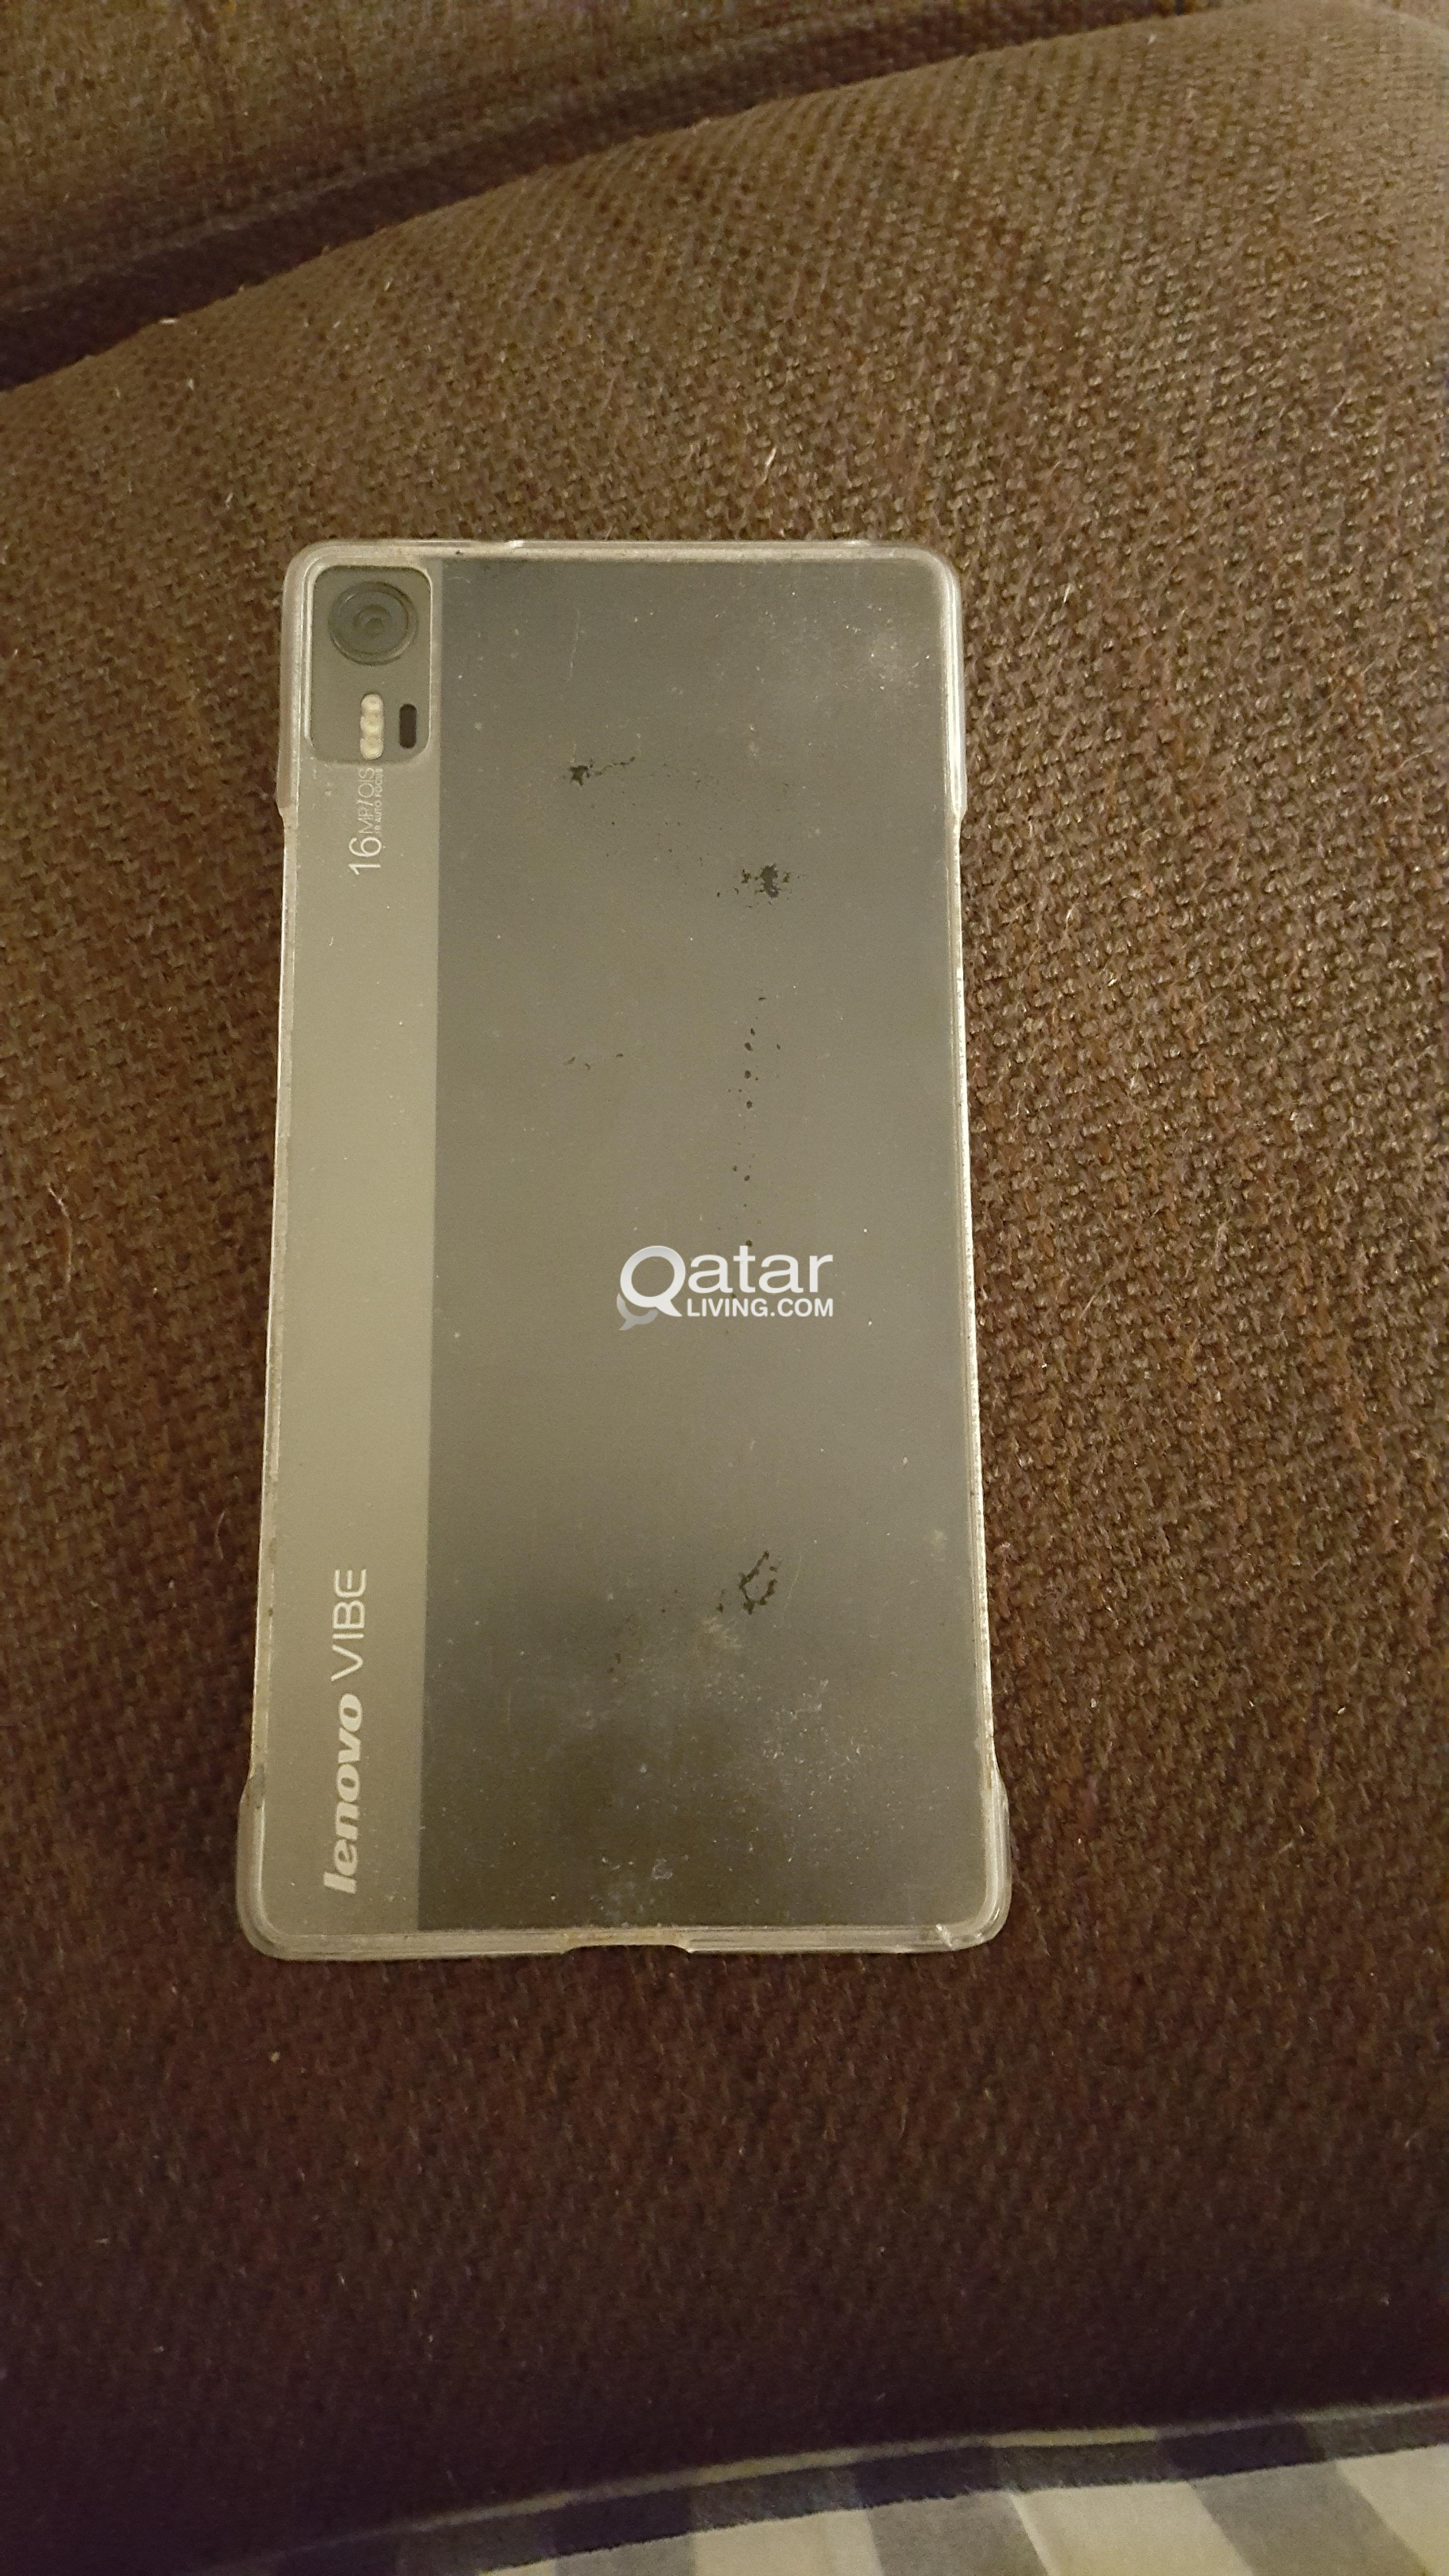 Lenovo Vibe Shot In Mint Condition With Box Accessories And Bill Grey Smartphone Title Information